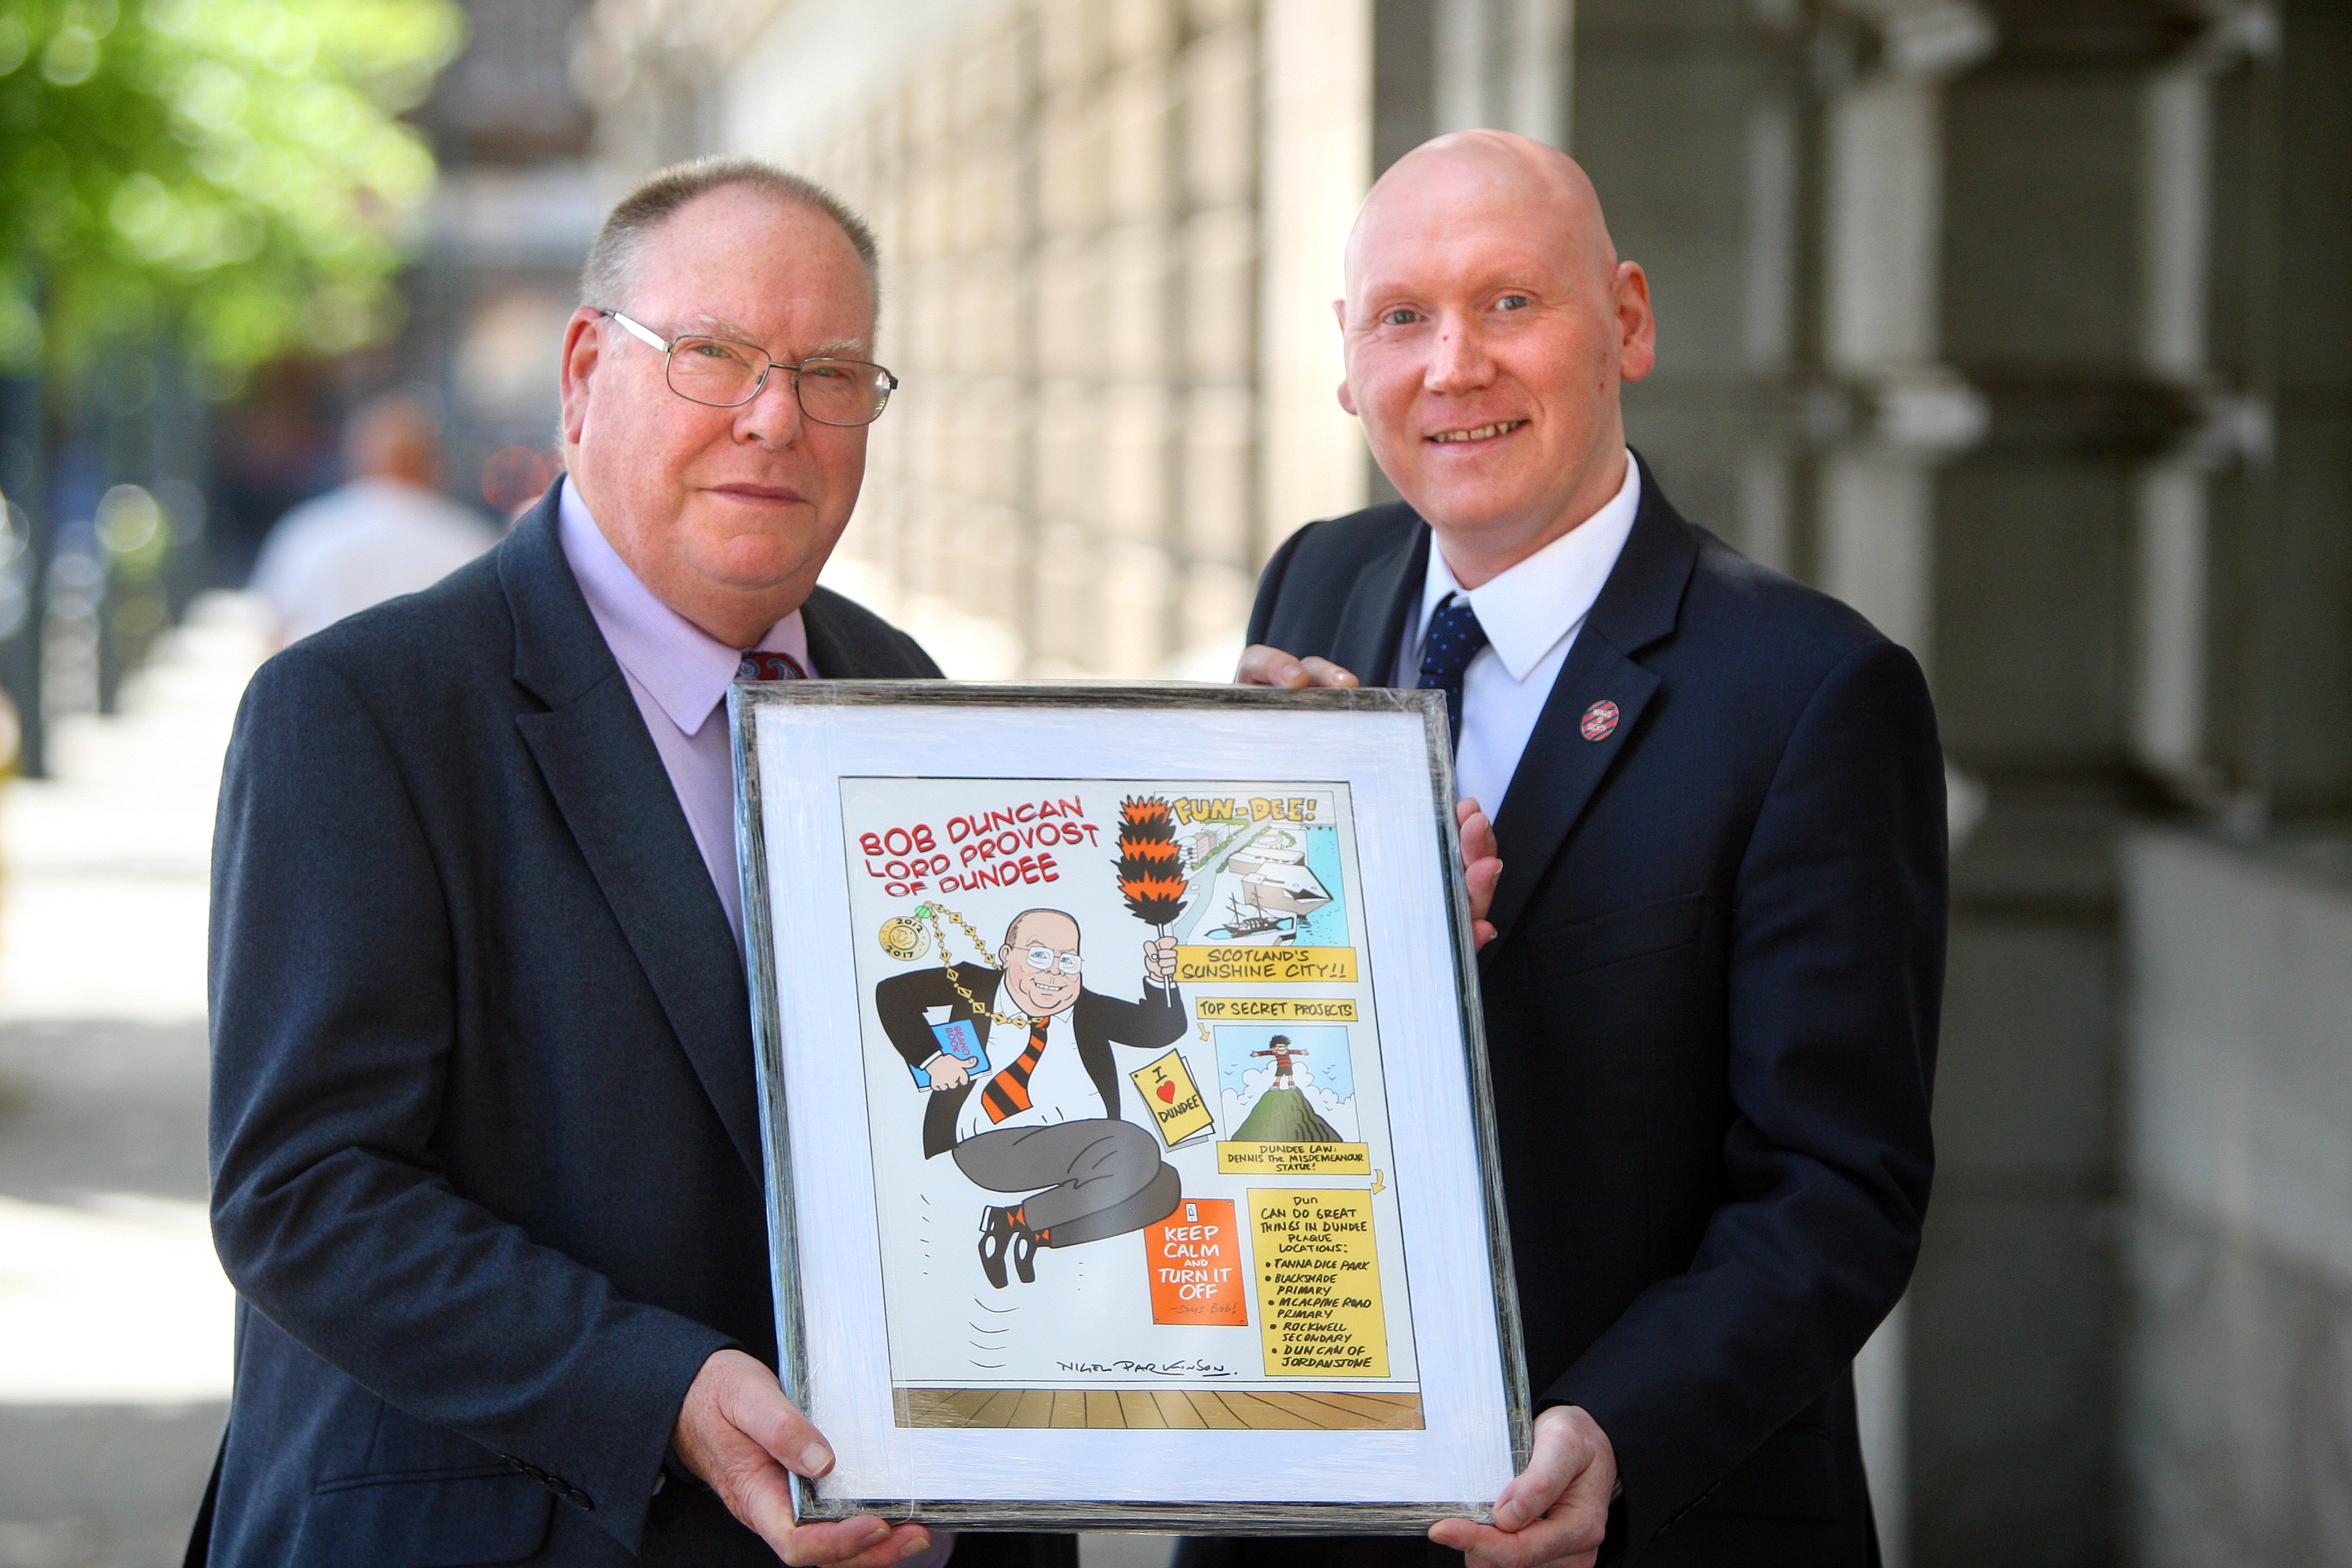 Bob Duncan being presented with a Beano style caricature by Craig Graham, managing editor at Beano Studios.